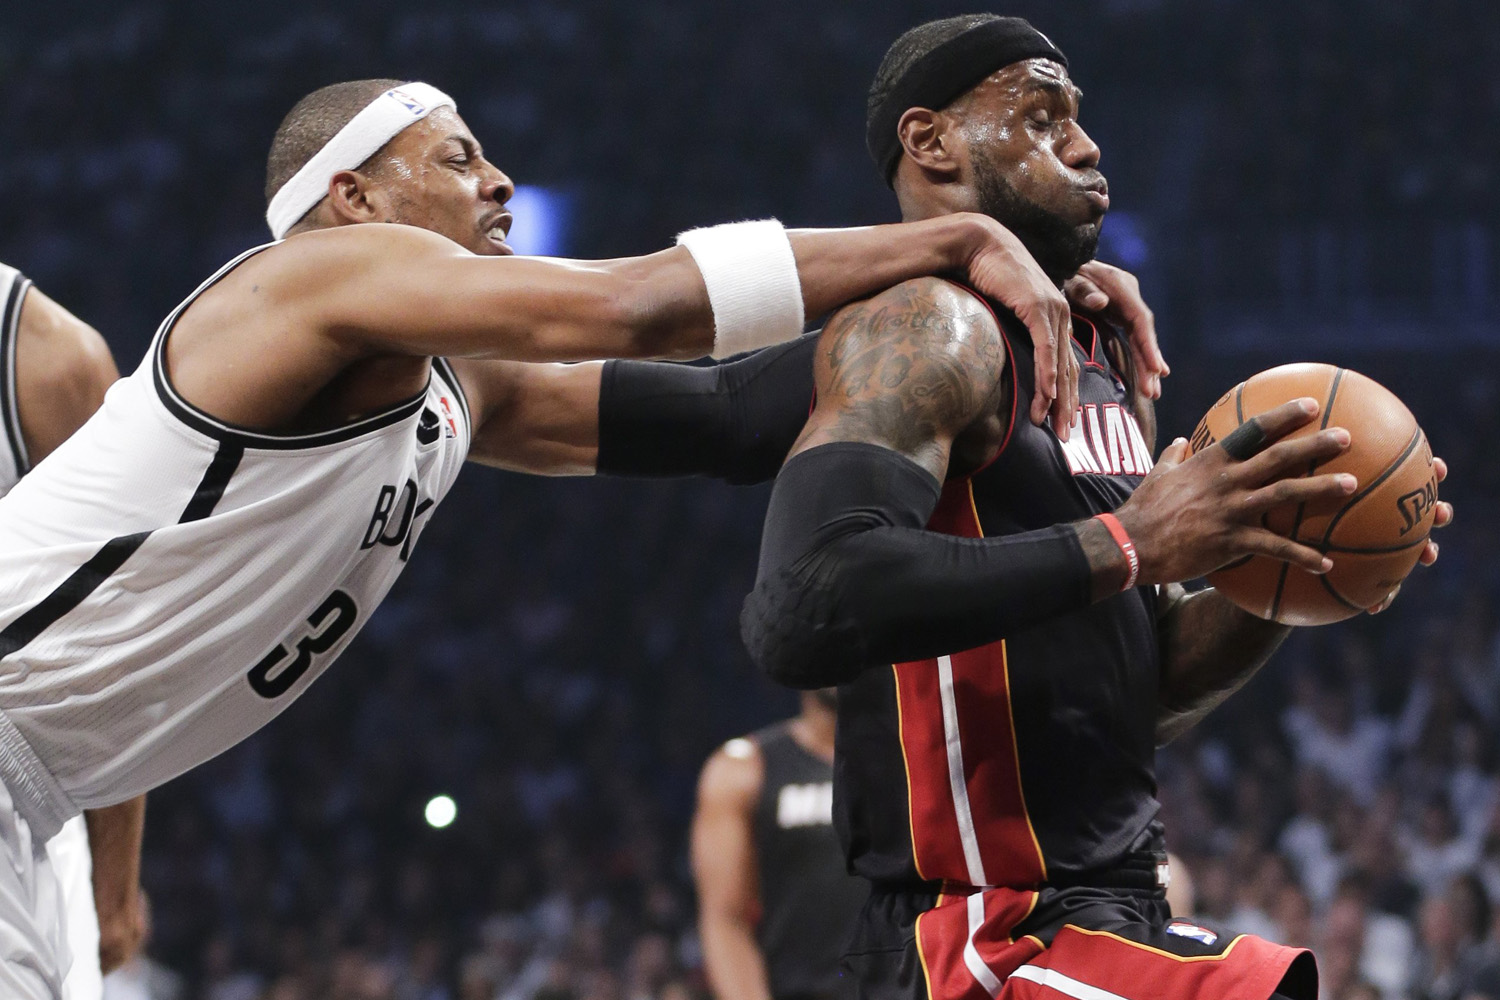 May 10, 2014. Brooklyn Nets forward Paul Pierce (34) fouls Miami Heat forward LeBron James (6) as he drives through the lane to score in the first period during Game 3 of an Eastern Conference semifinal NBA playoff basketball game.